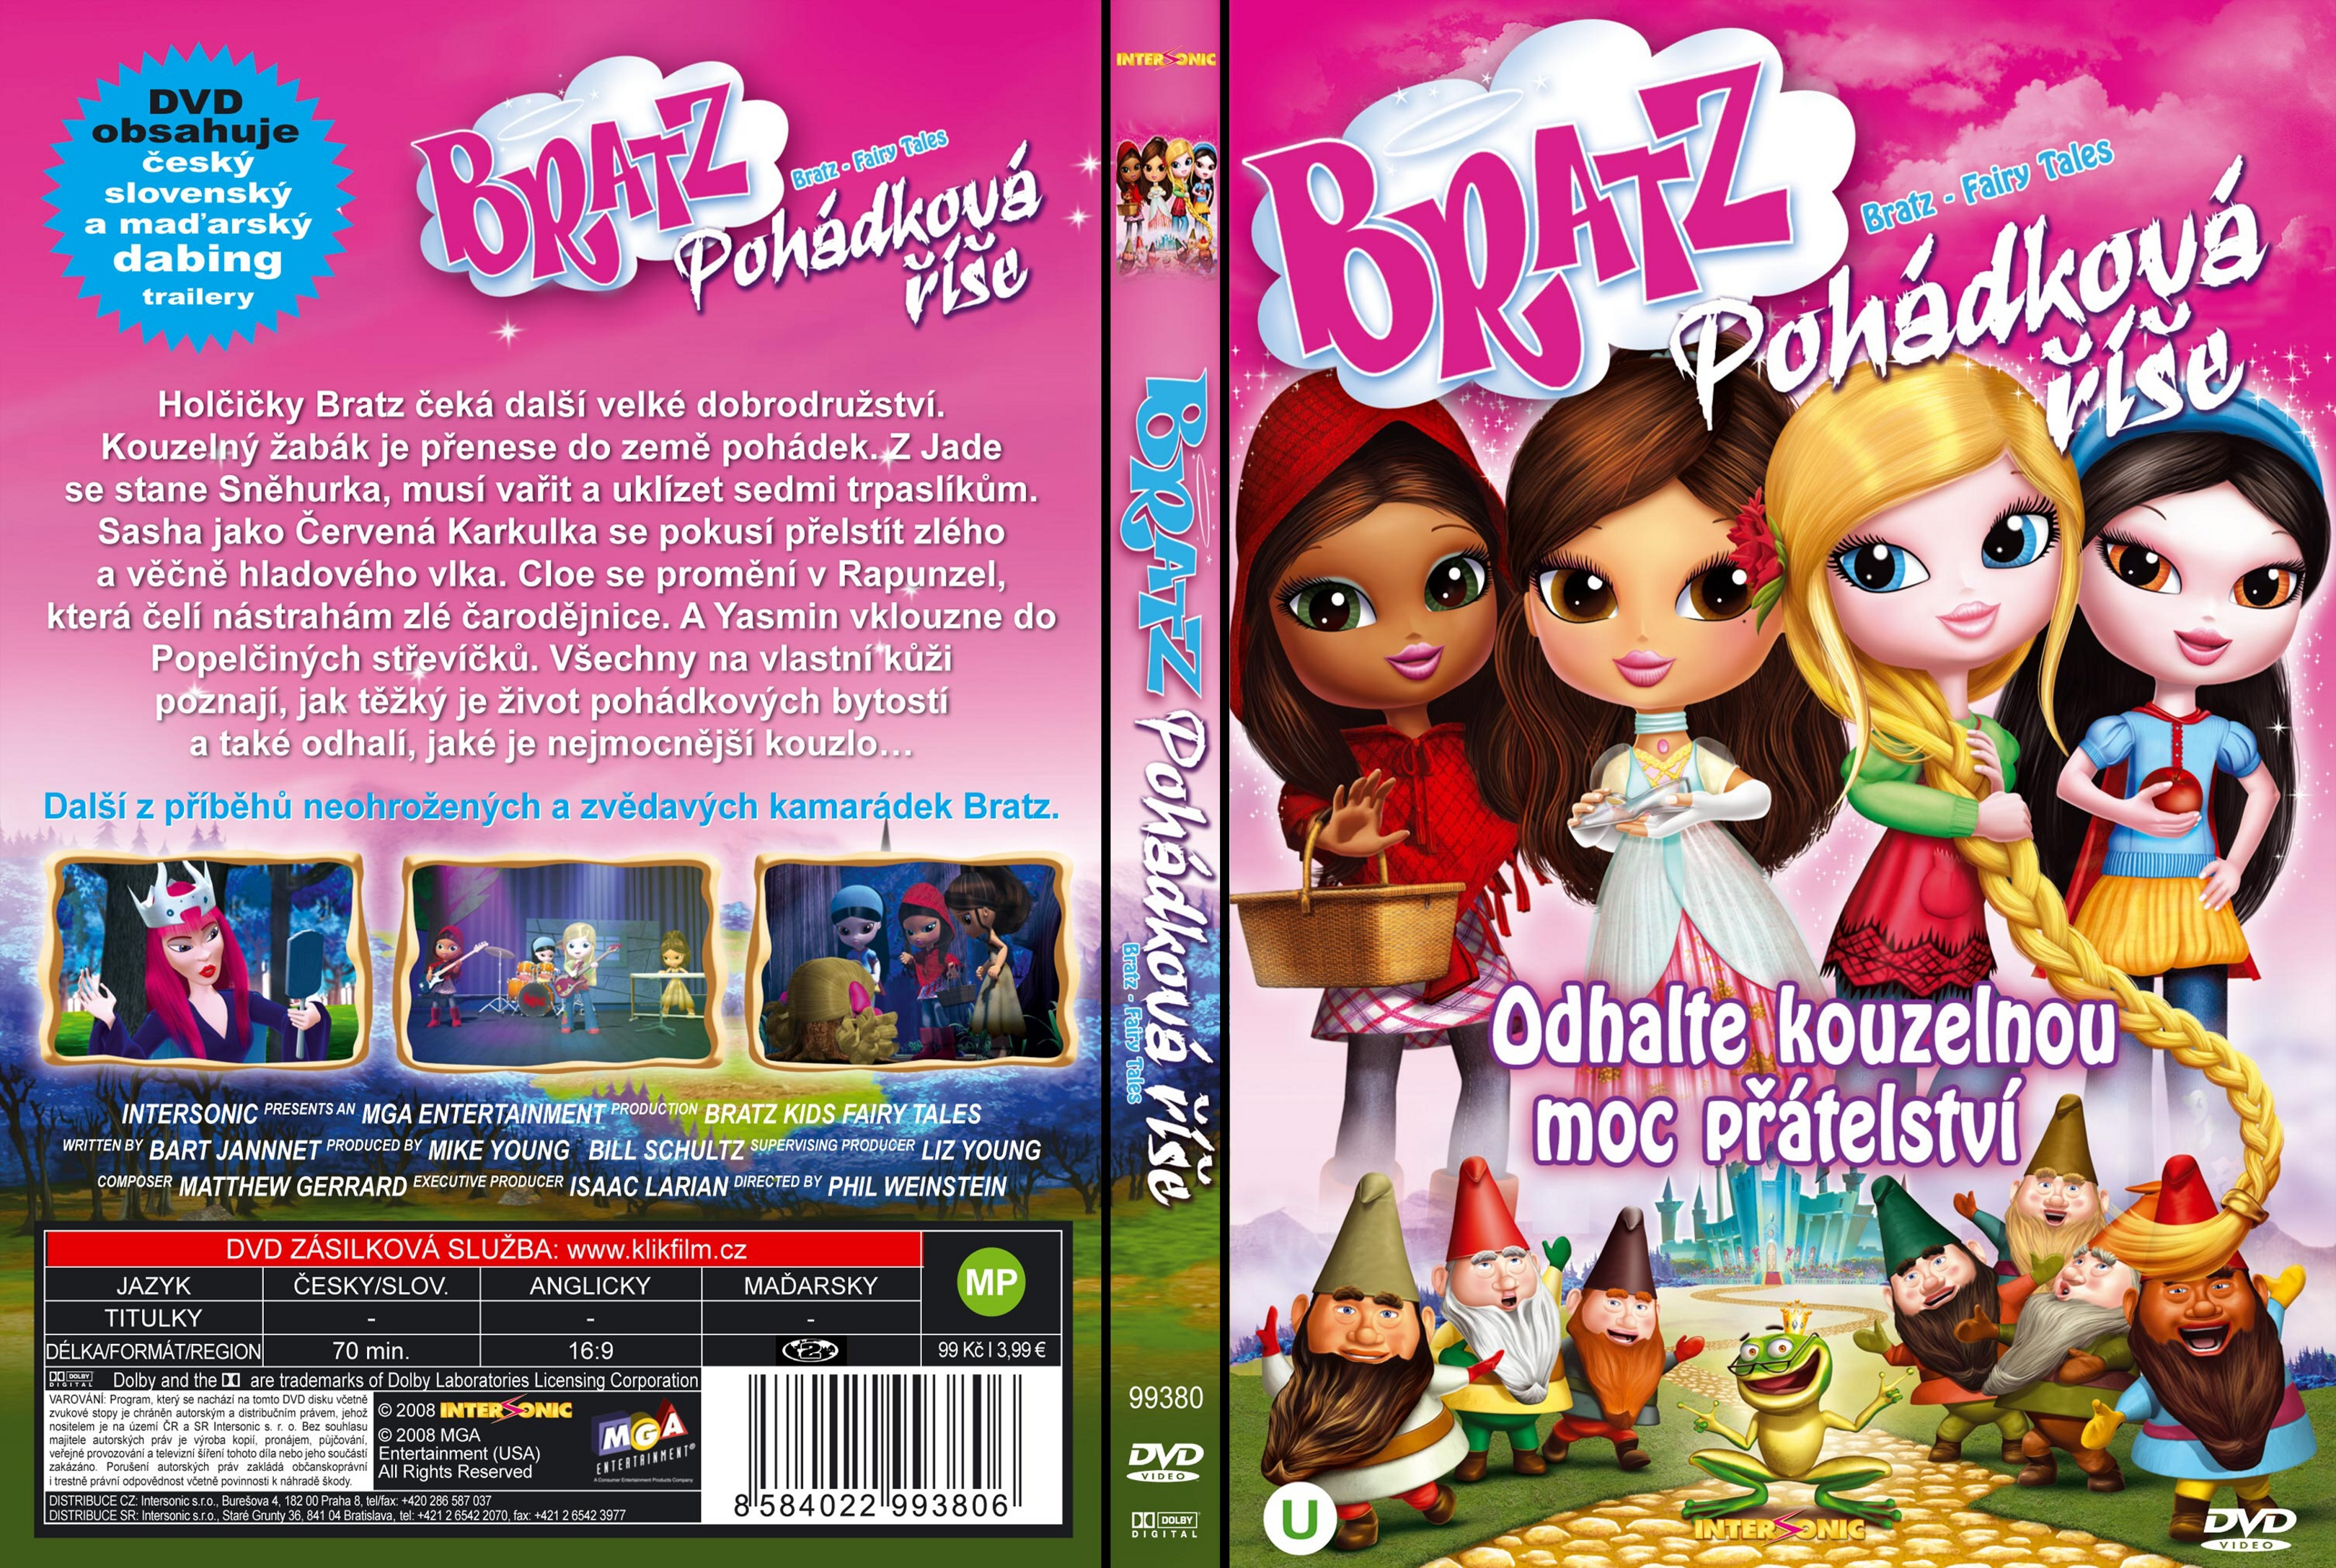 coversboxsk bratz kidz fairy tales video 2008